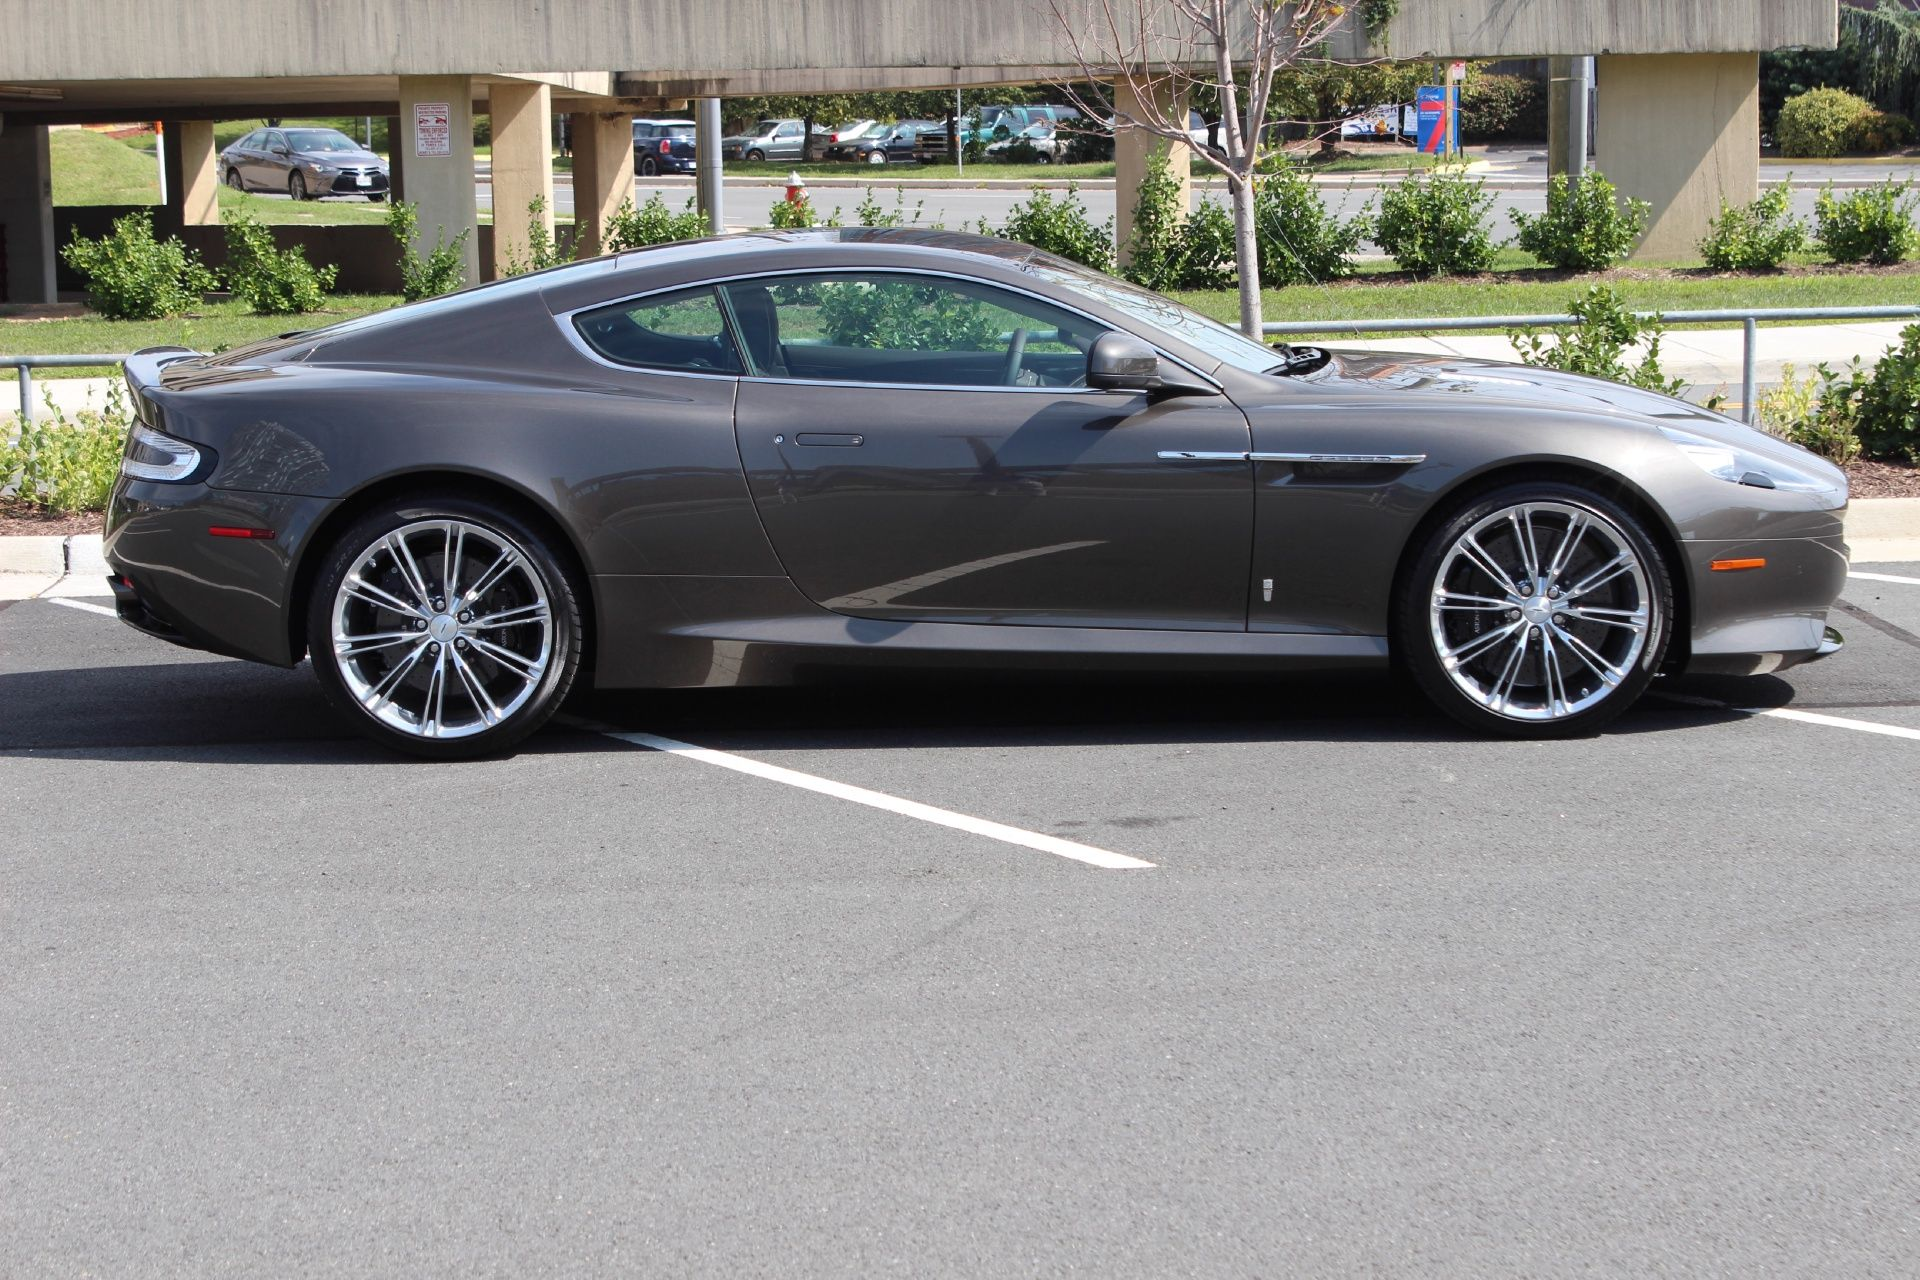 the last aston martin db9 gt to be in the usa! the 1 of 9 is only at